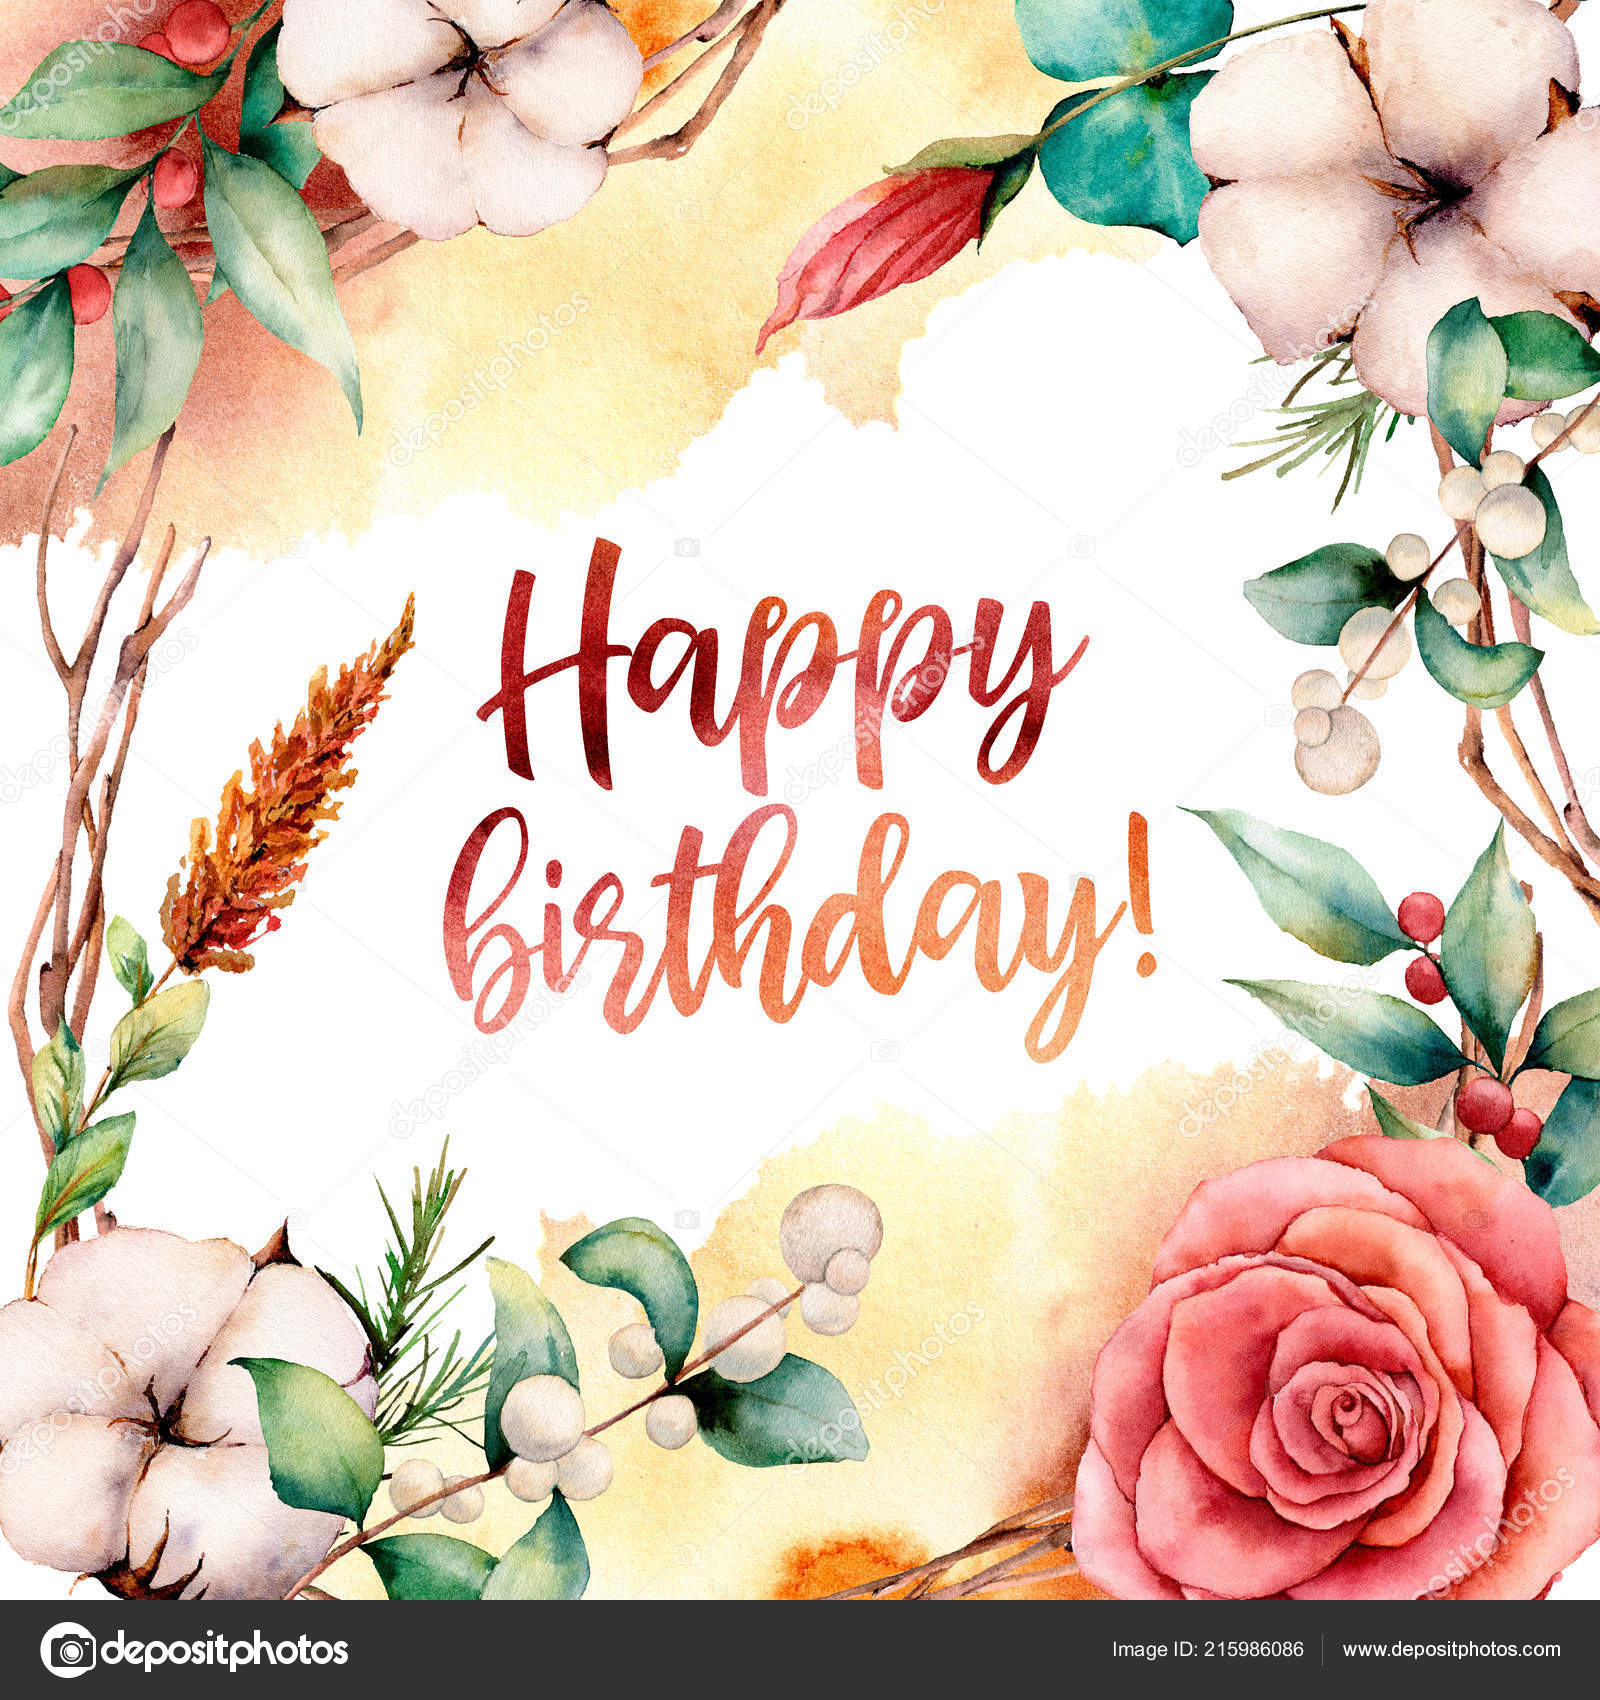 Watercolor Happy Birthday Card With Flowers Hand Painted Tree Border Cotton Branch